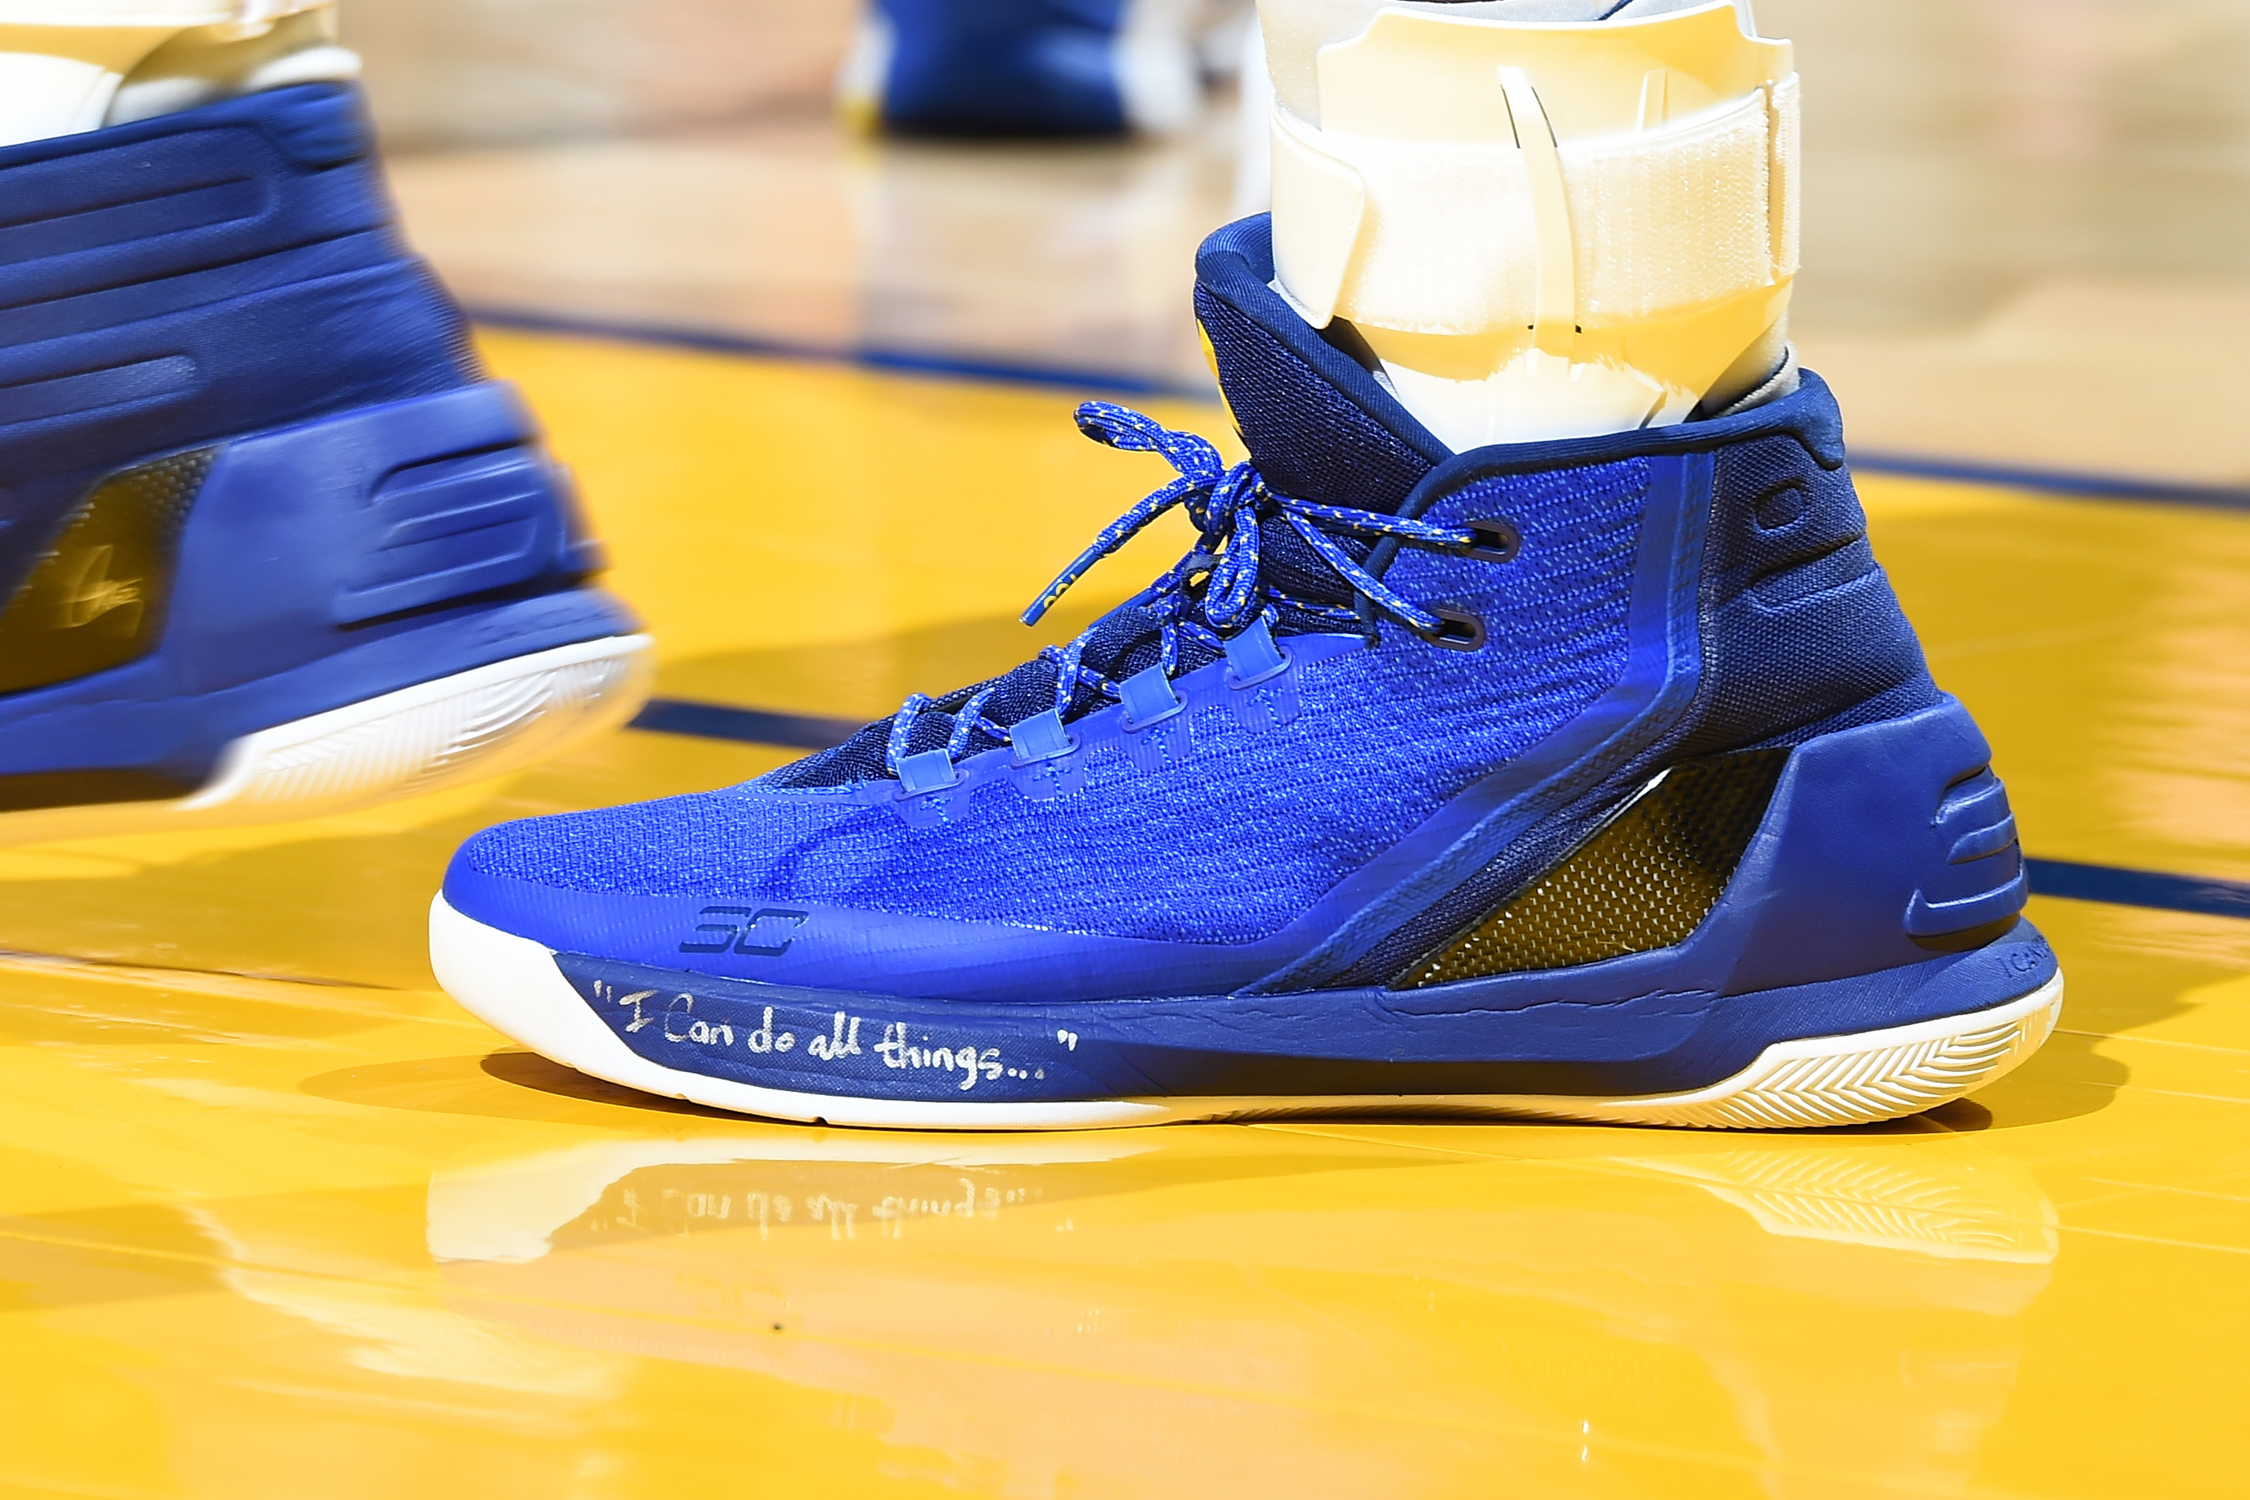 Under Armour Curry 3 worn by Stephen Curry